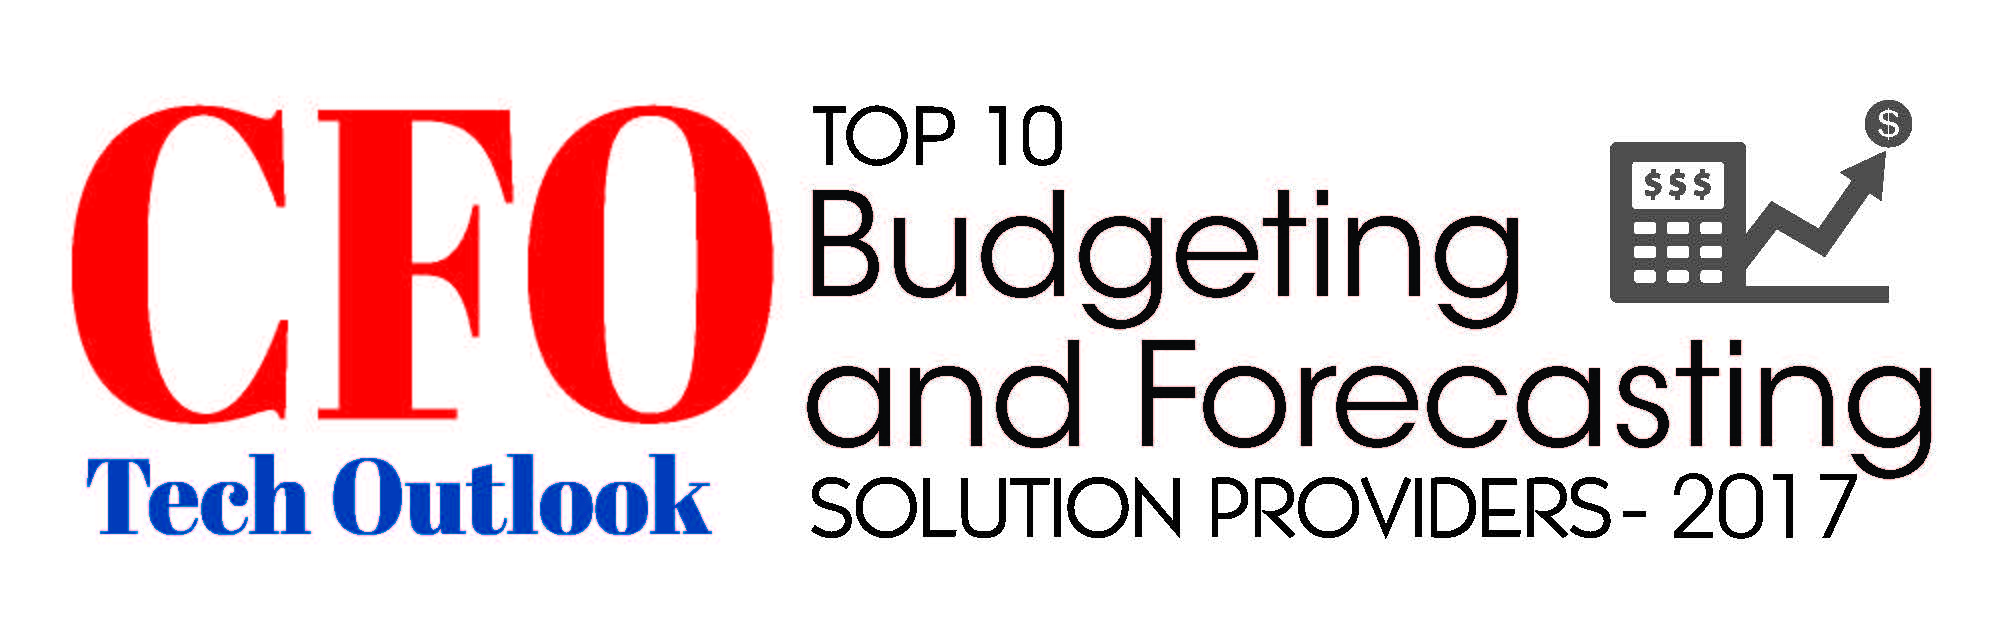 CFO Tech Outlook - Top 10 Budgeting and Forecasting Solution Providers 2017